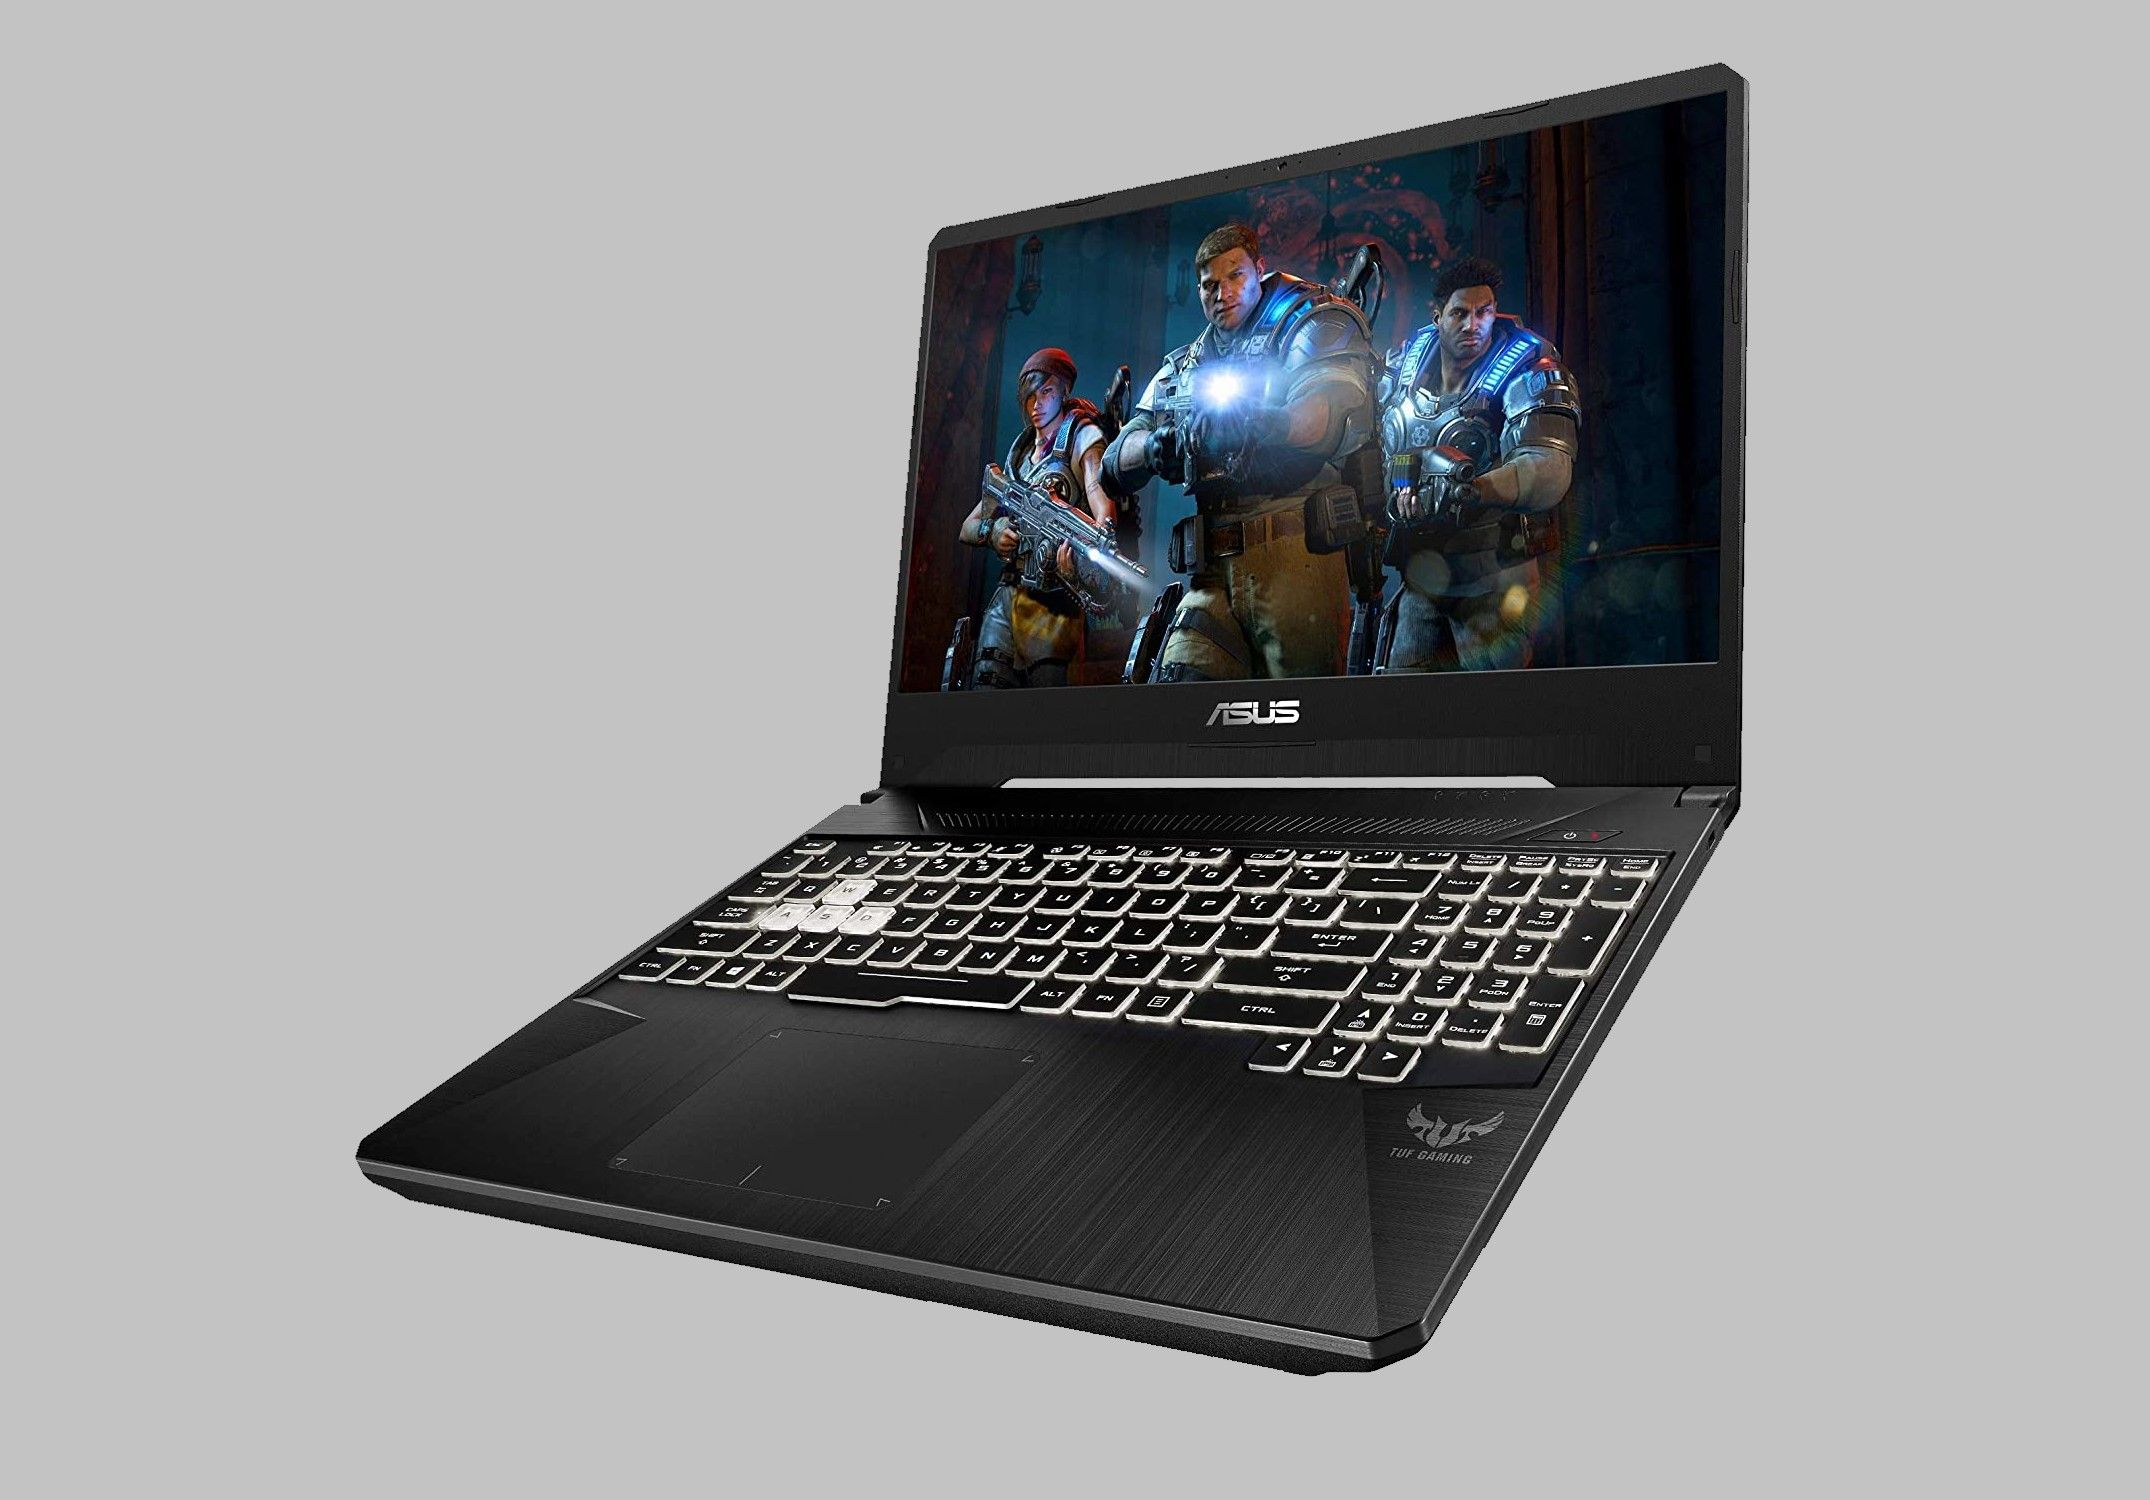 The 5 Best 120hz Gaming Laptops In 2021 Gaming Laptops Laptop Best